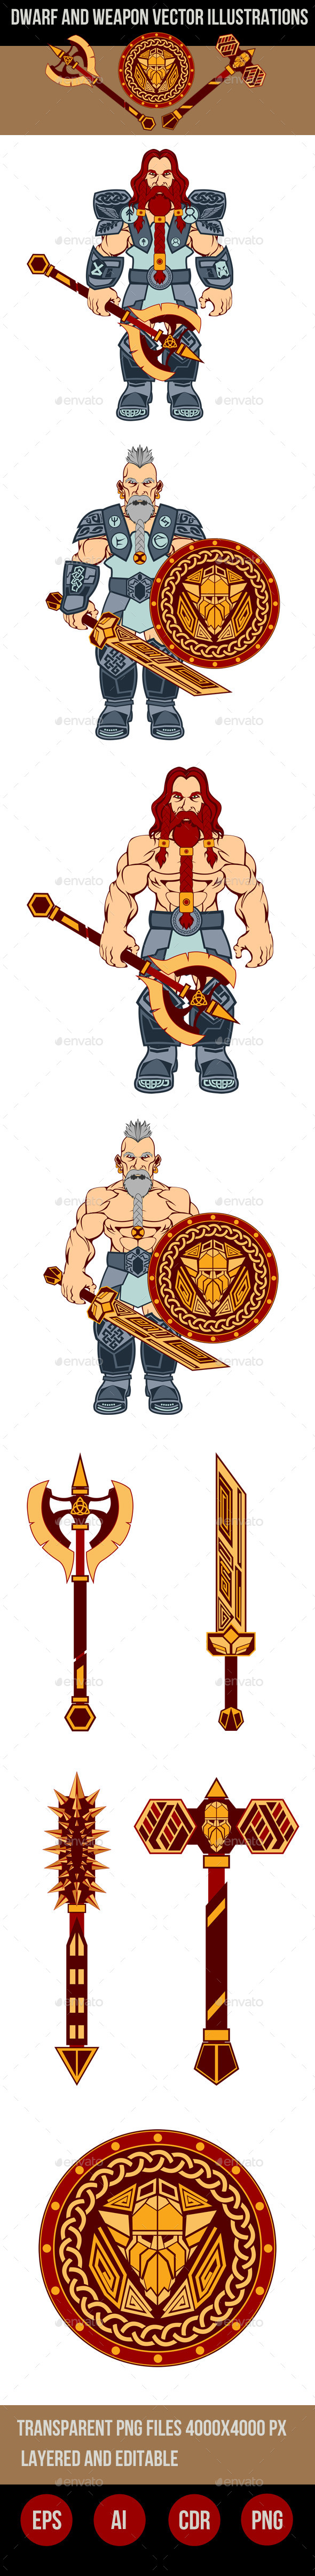 GraphicRiver Dwarfs and Weapons Vector Illustrations 9095601